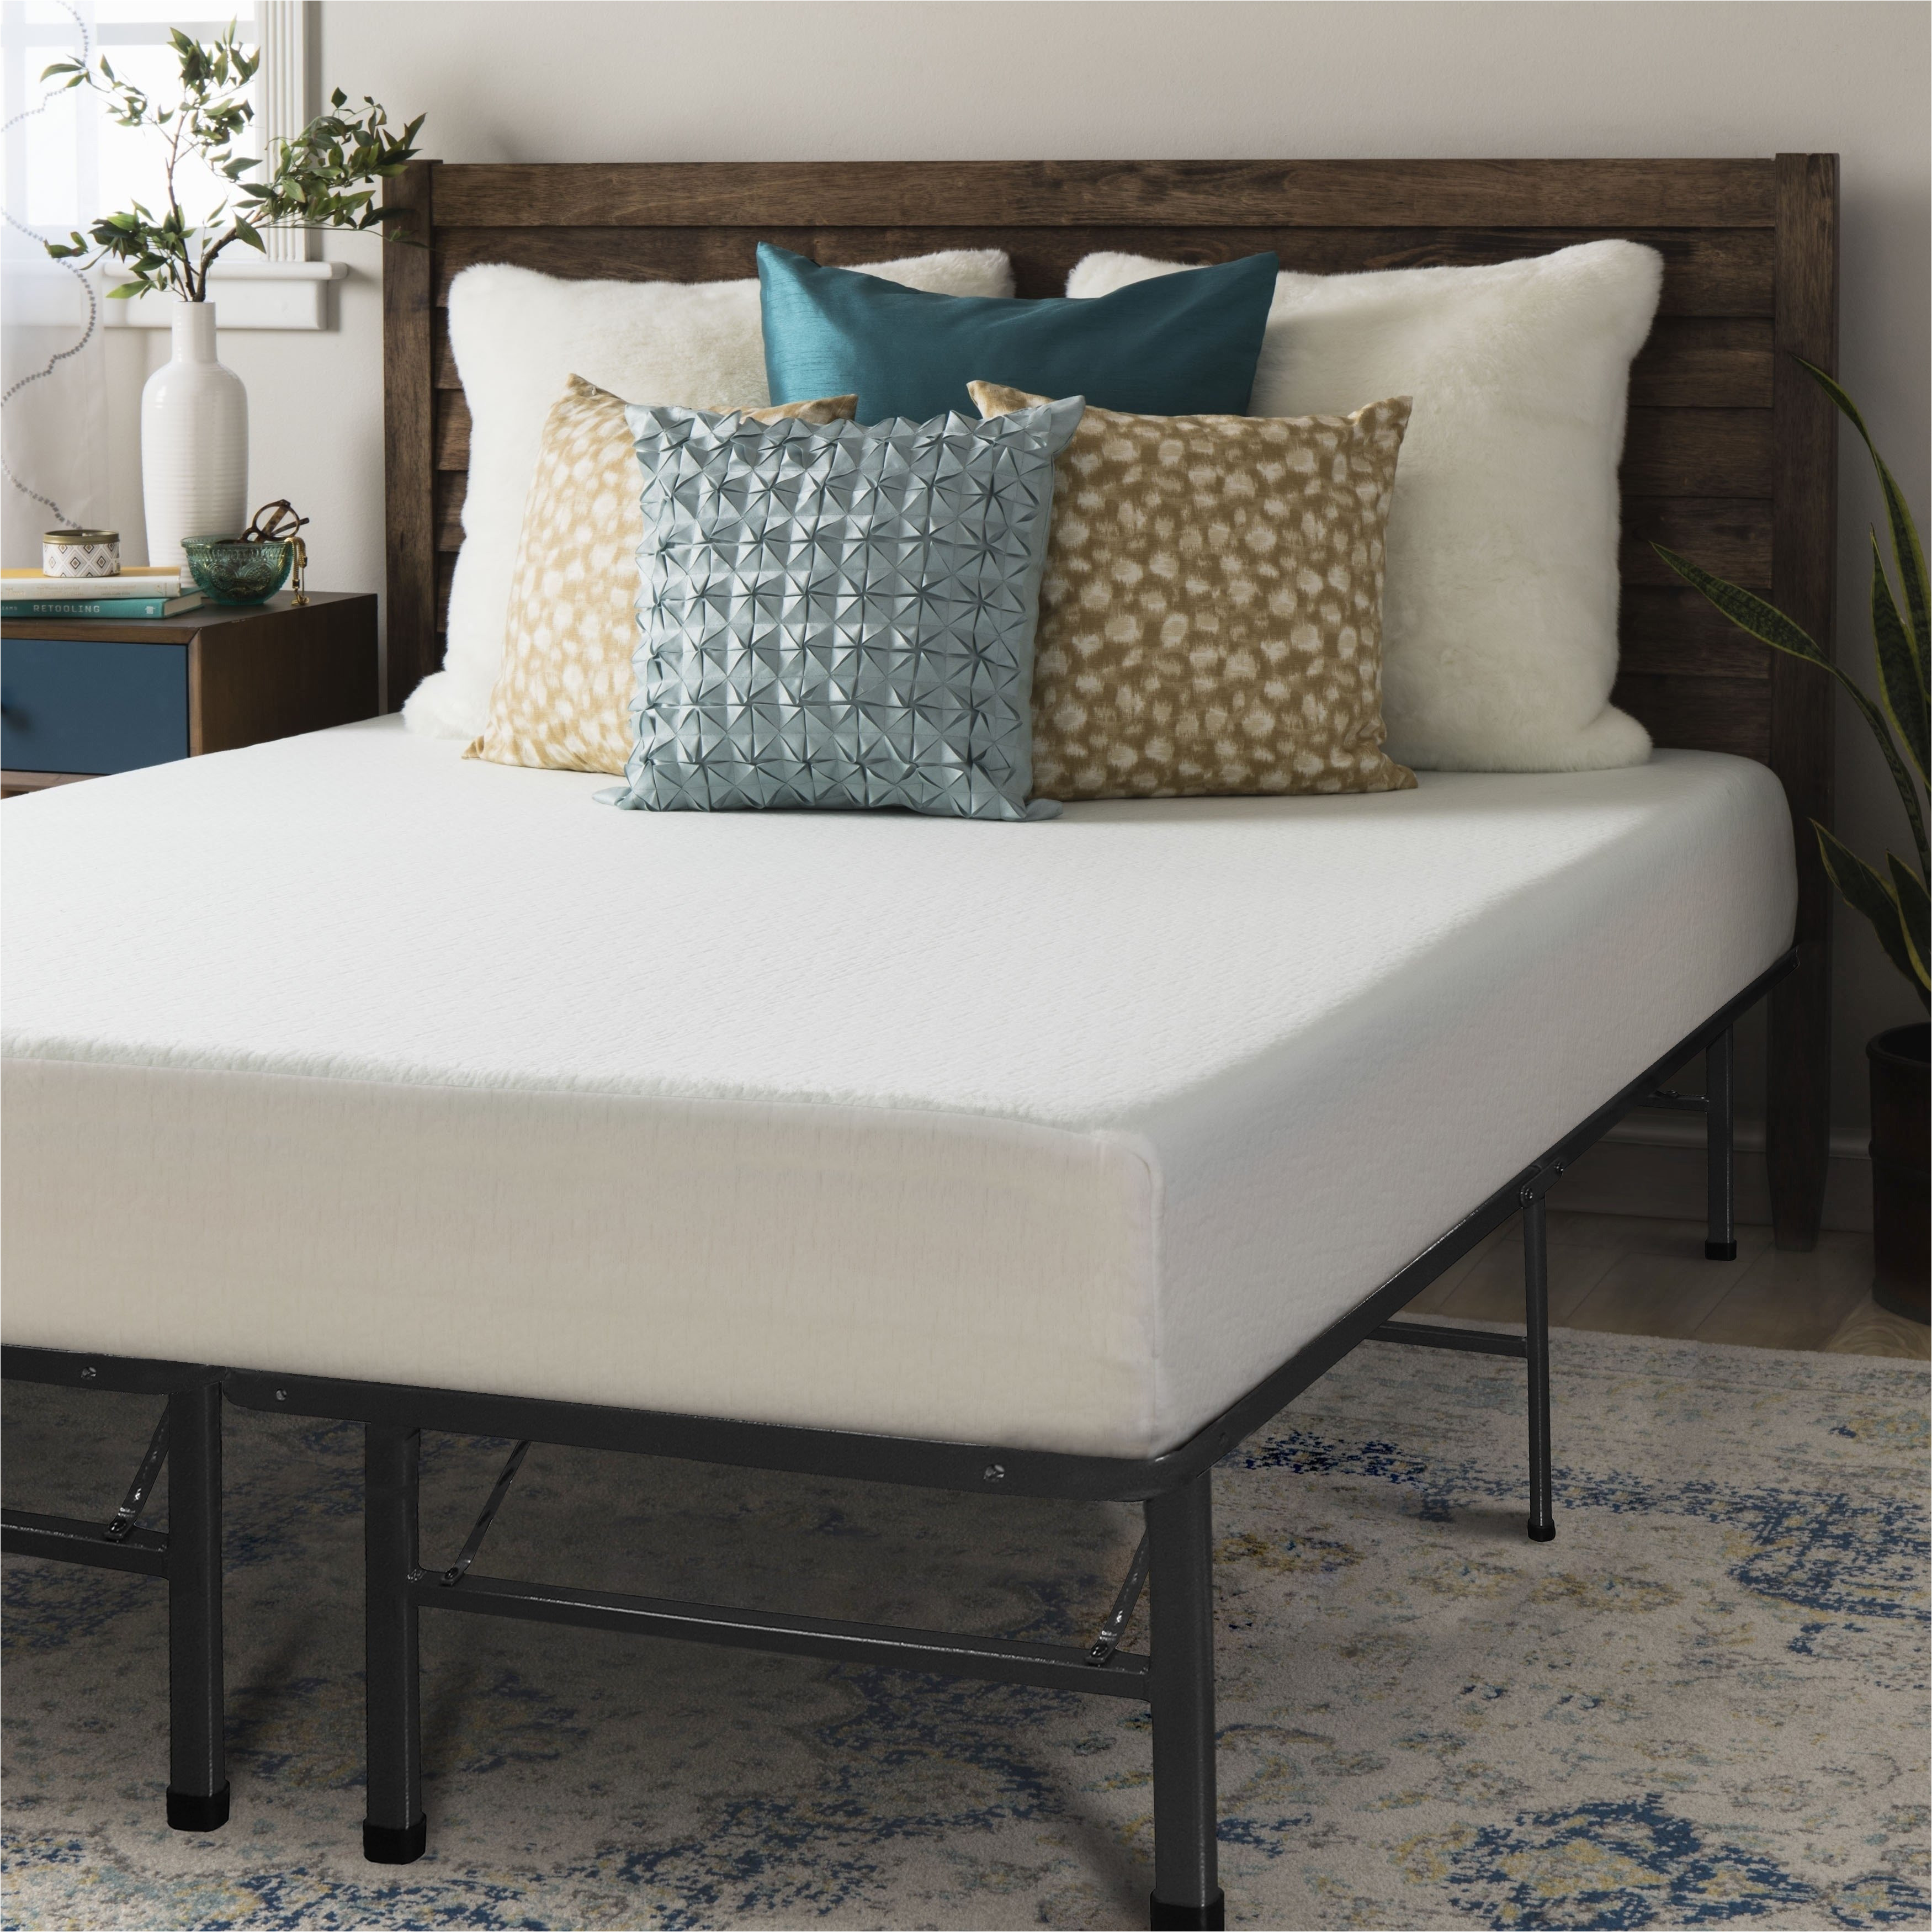 full size memory foam mattress 8 inch with bed frame and brackets bed skirt set crown comfort free shipping today overstock com 19304976